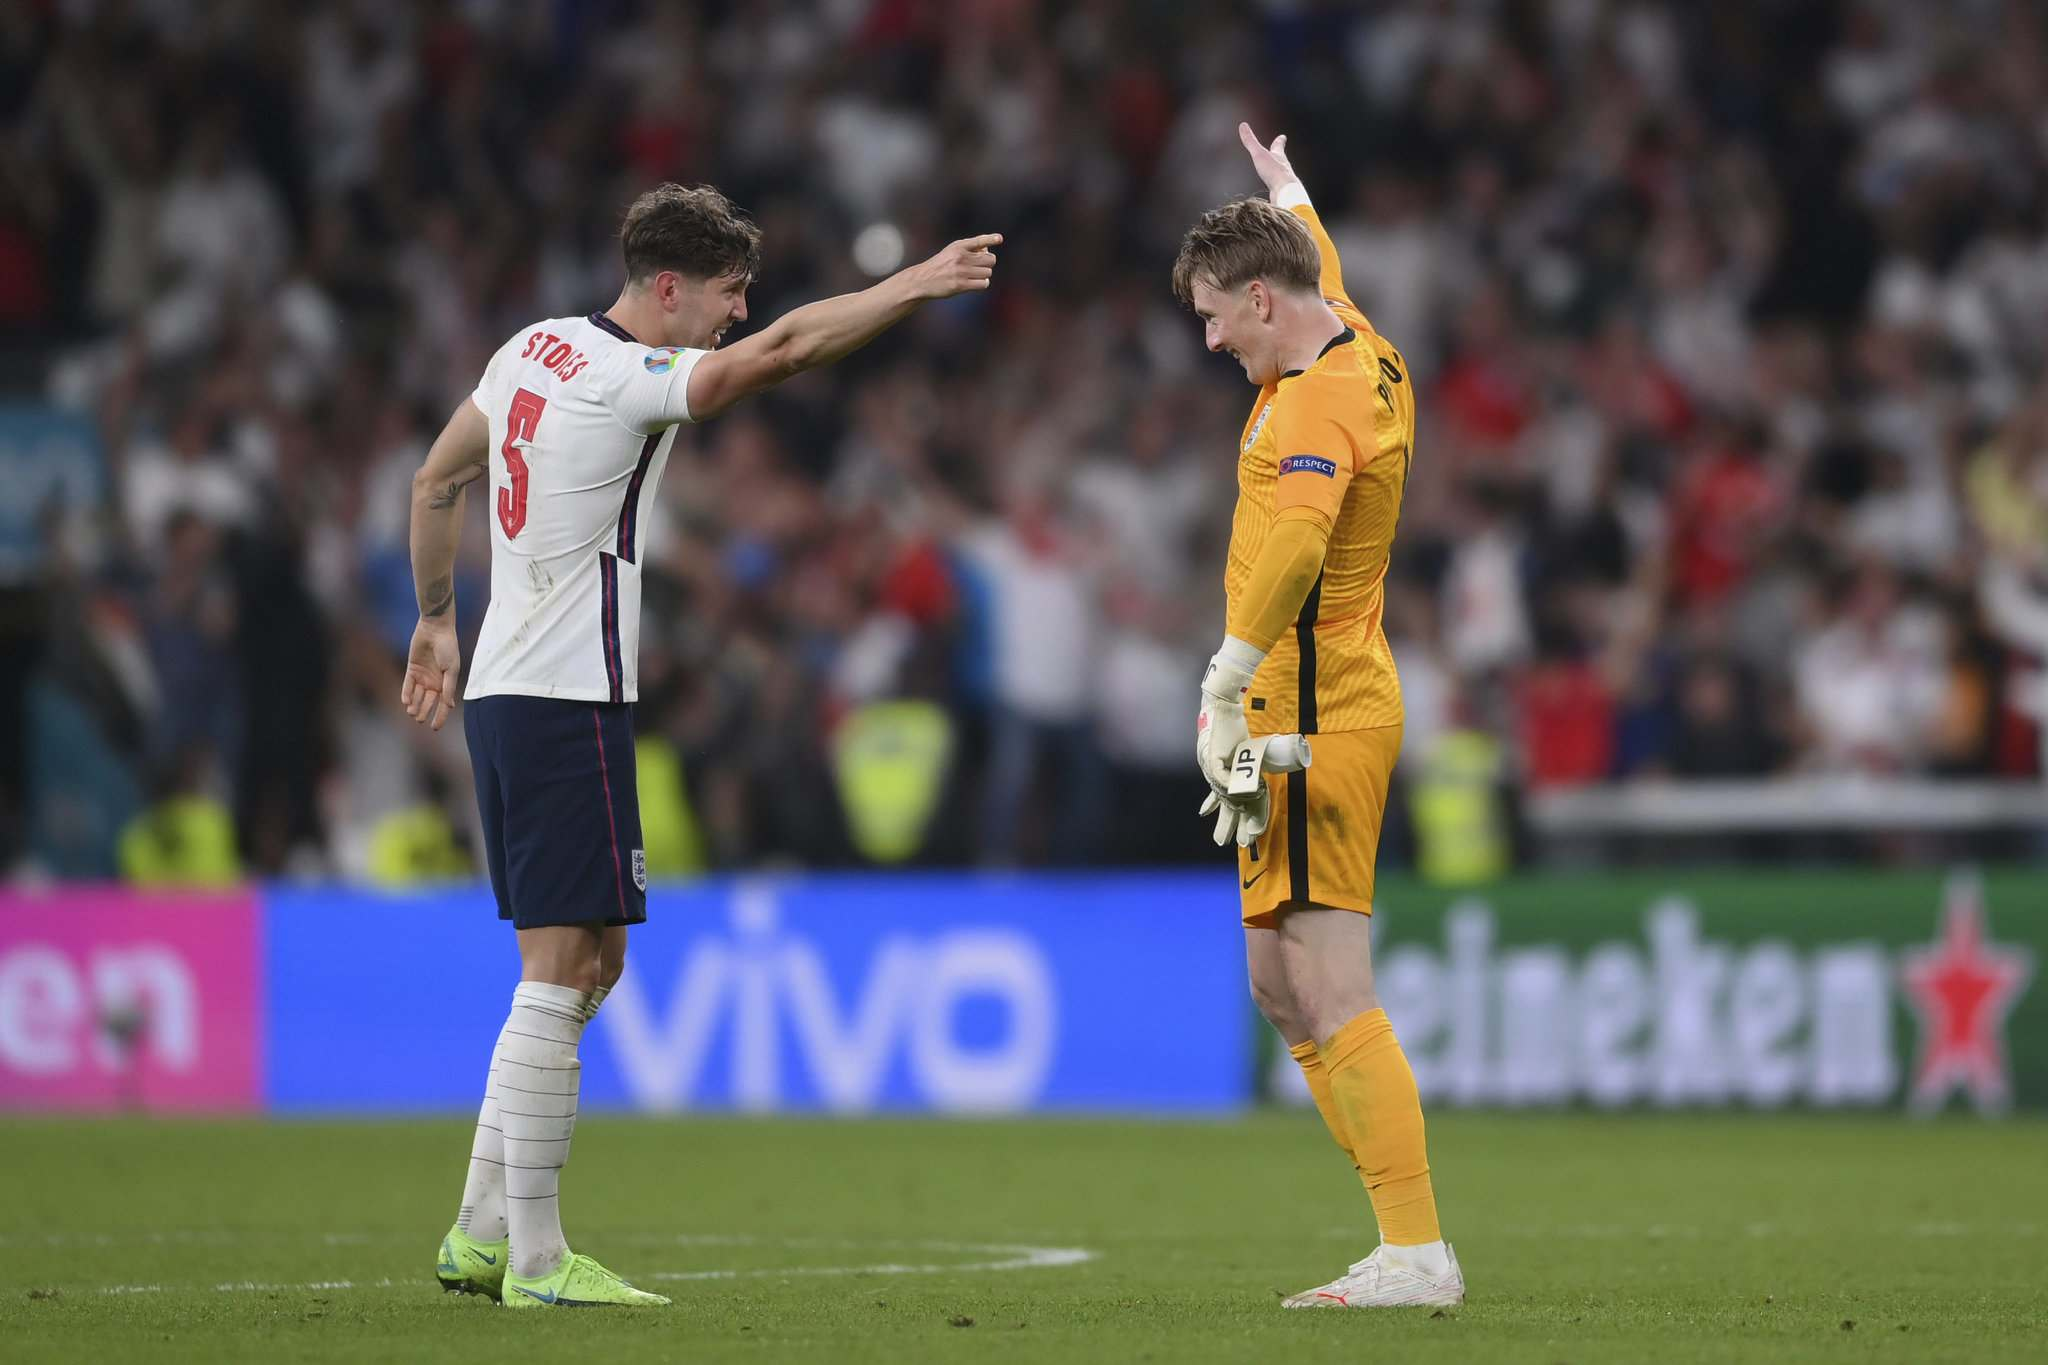 England's goalkeeper Jordan Pickford, right, celebrates with his teammate John Stones at the end of the Euro 2020 soccer semifinal match between England and Denmark.